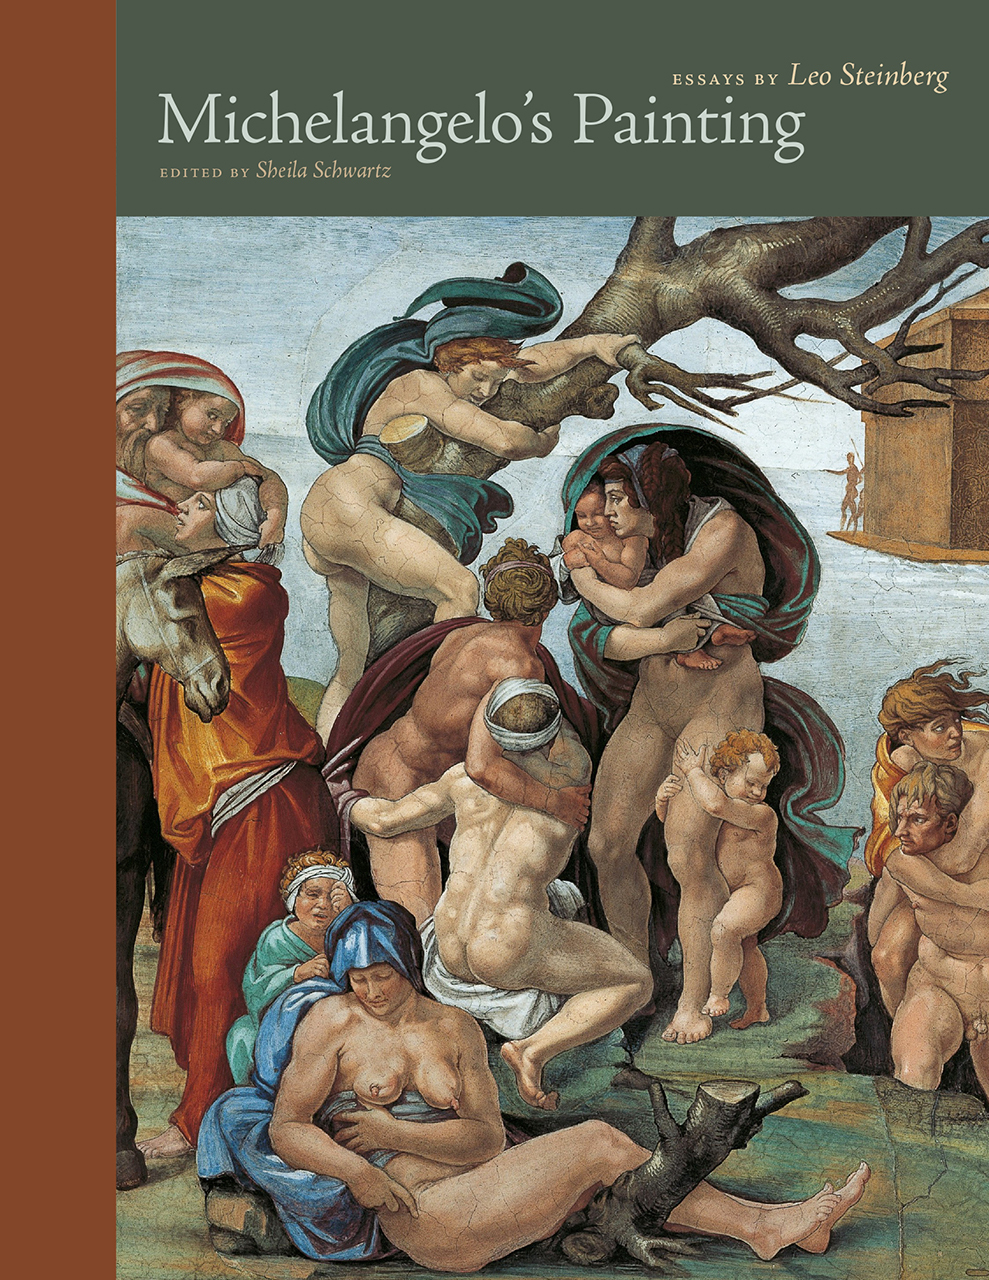 Michelangelo's Painting: Essays by Leo Steinberg